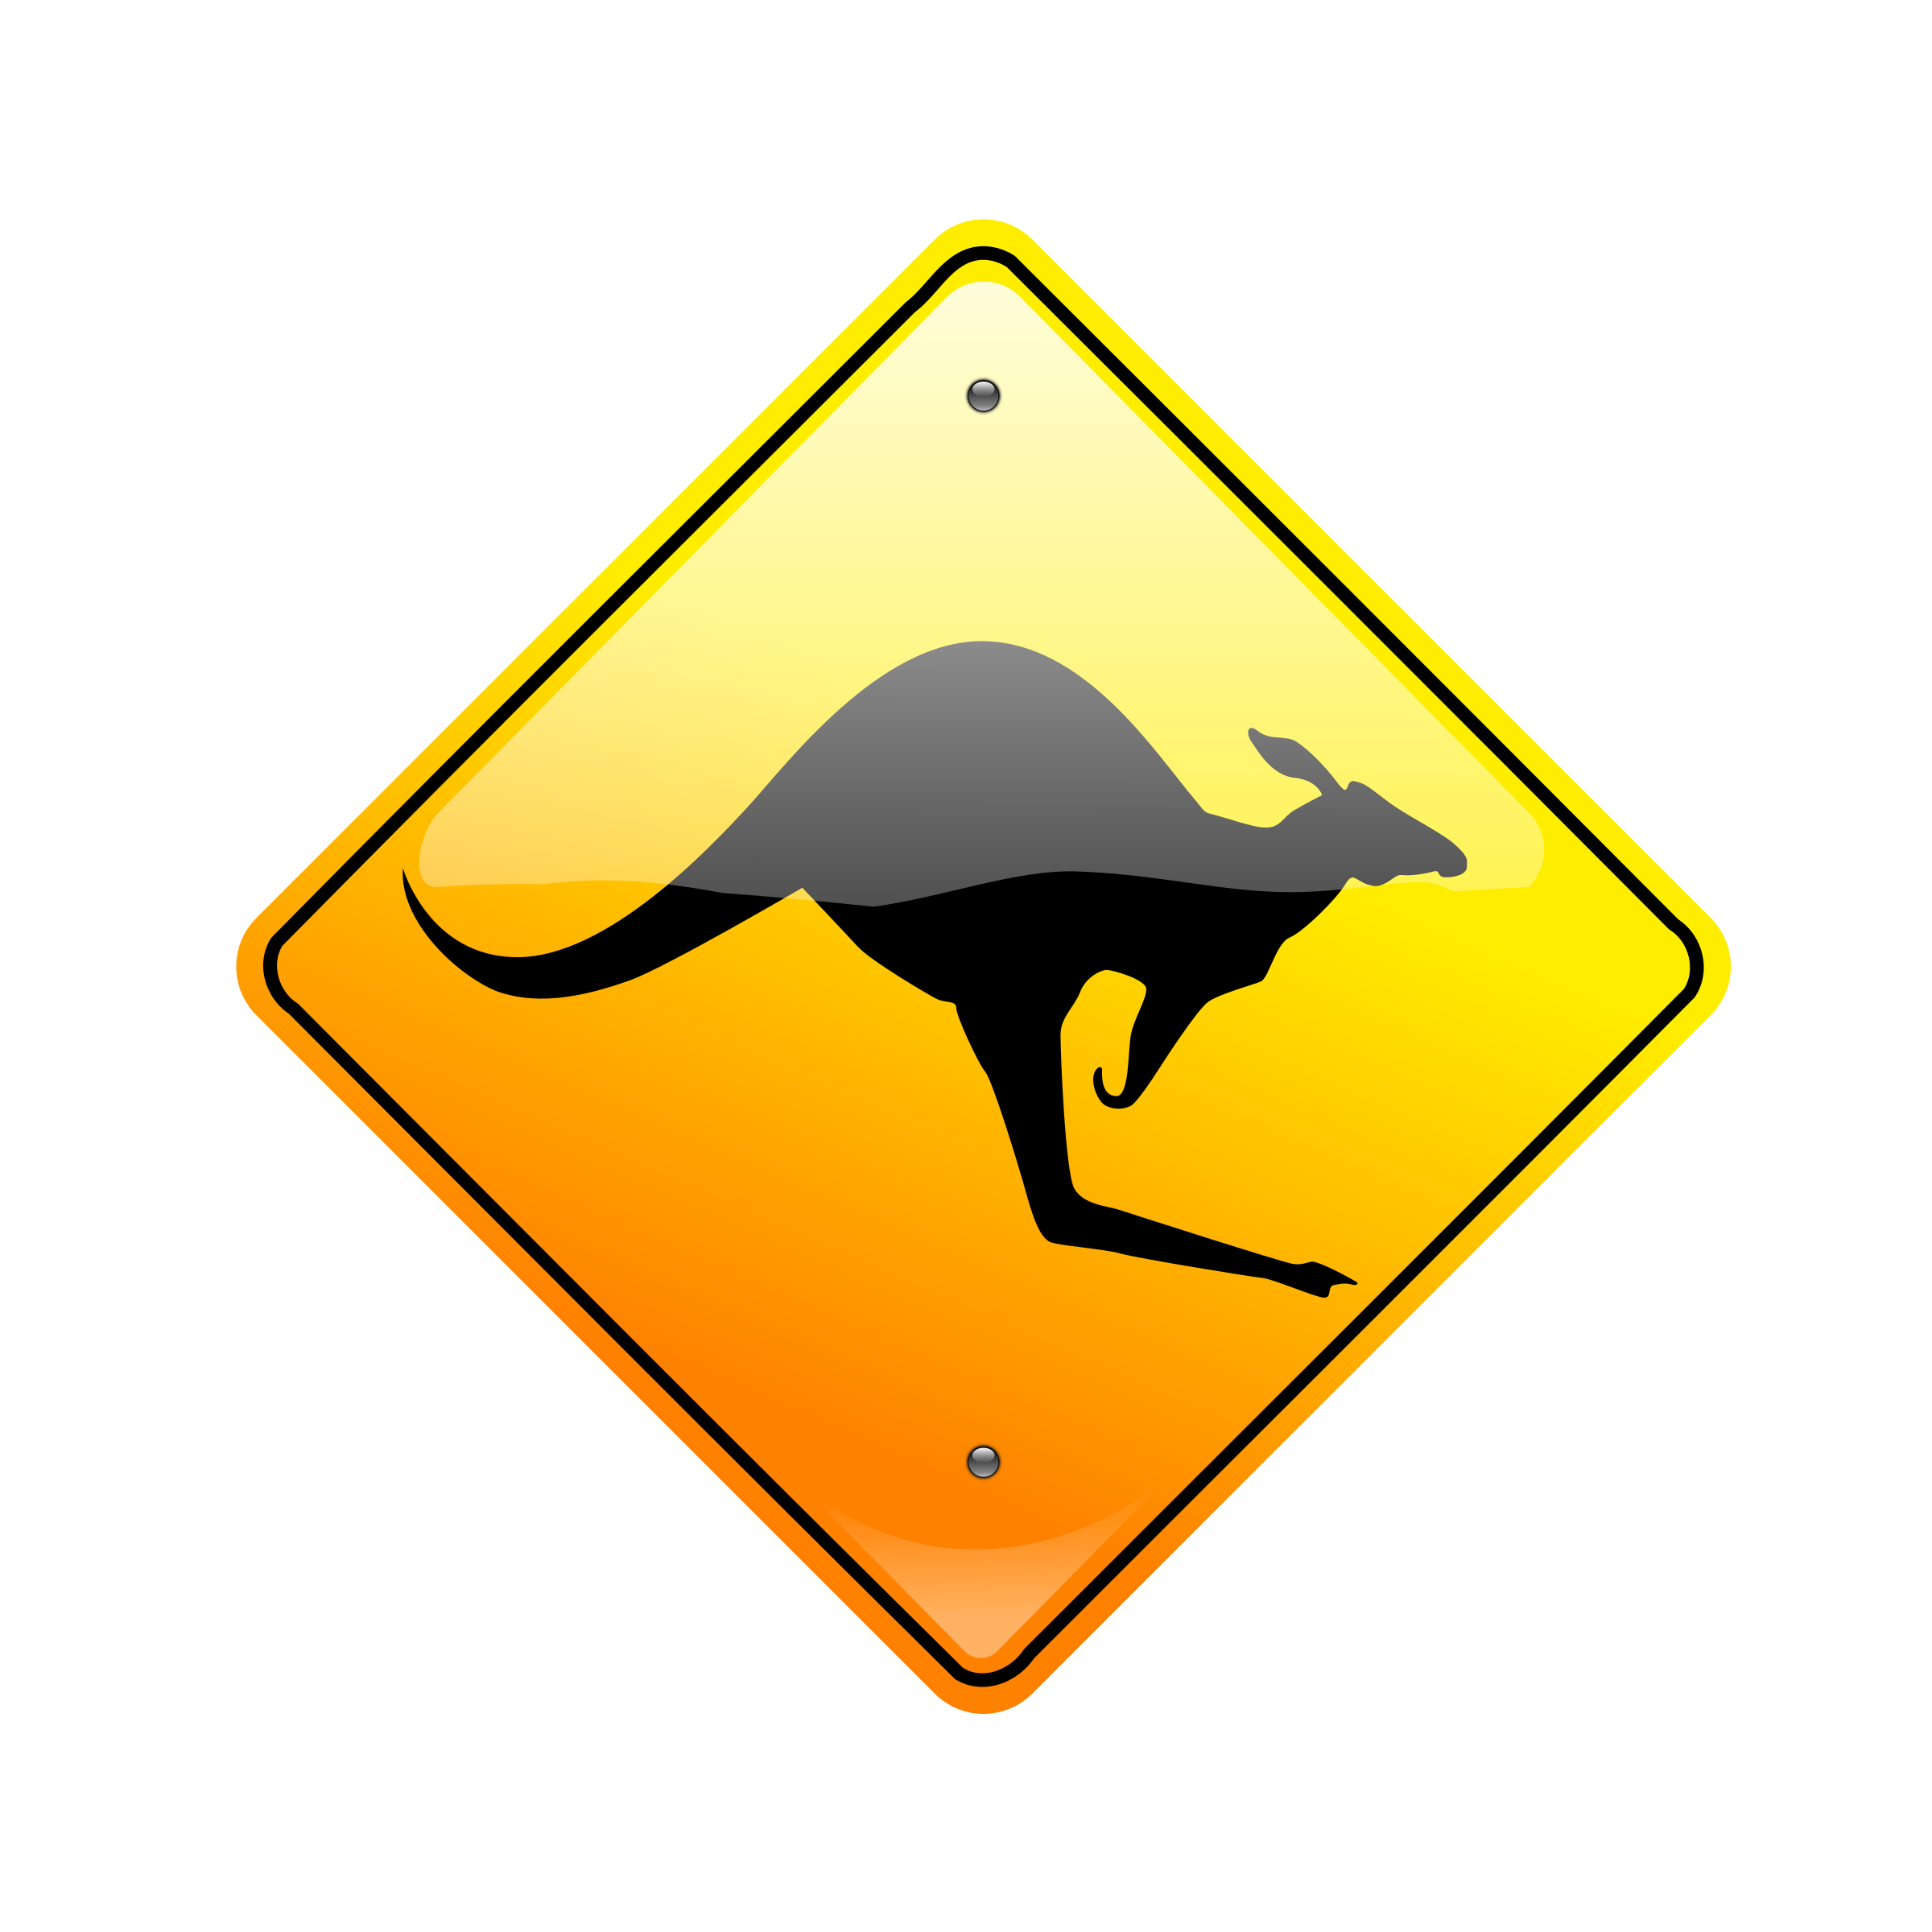 Kangaroo Sign by djcowan